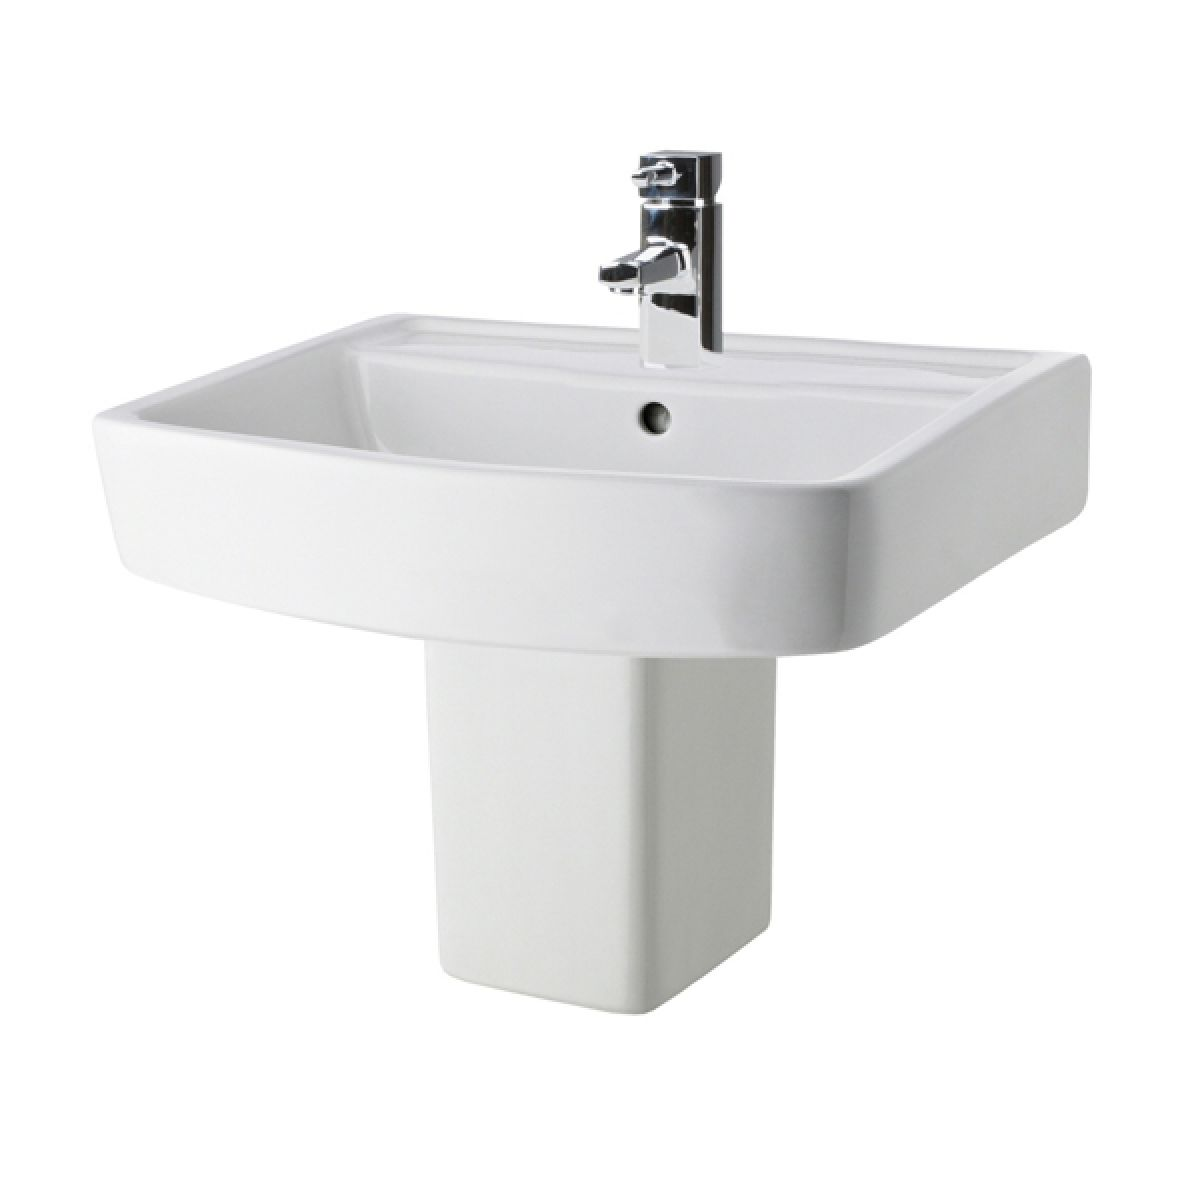 Premier Bliss 1 Tap Hole Basin with Semi Pedestal 600mm